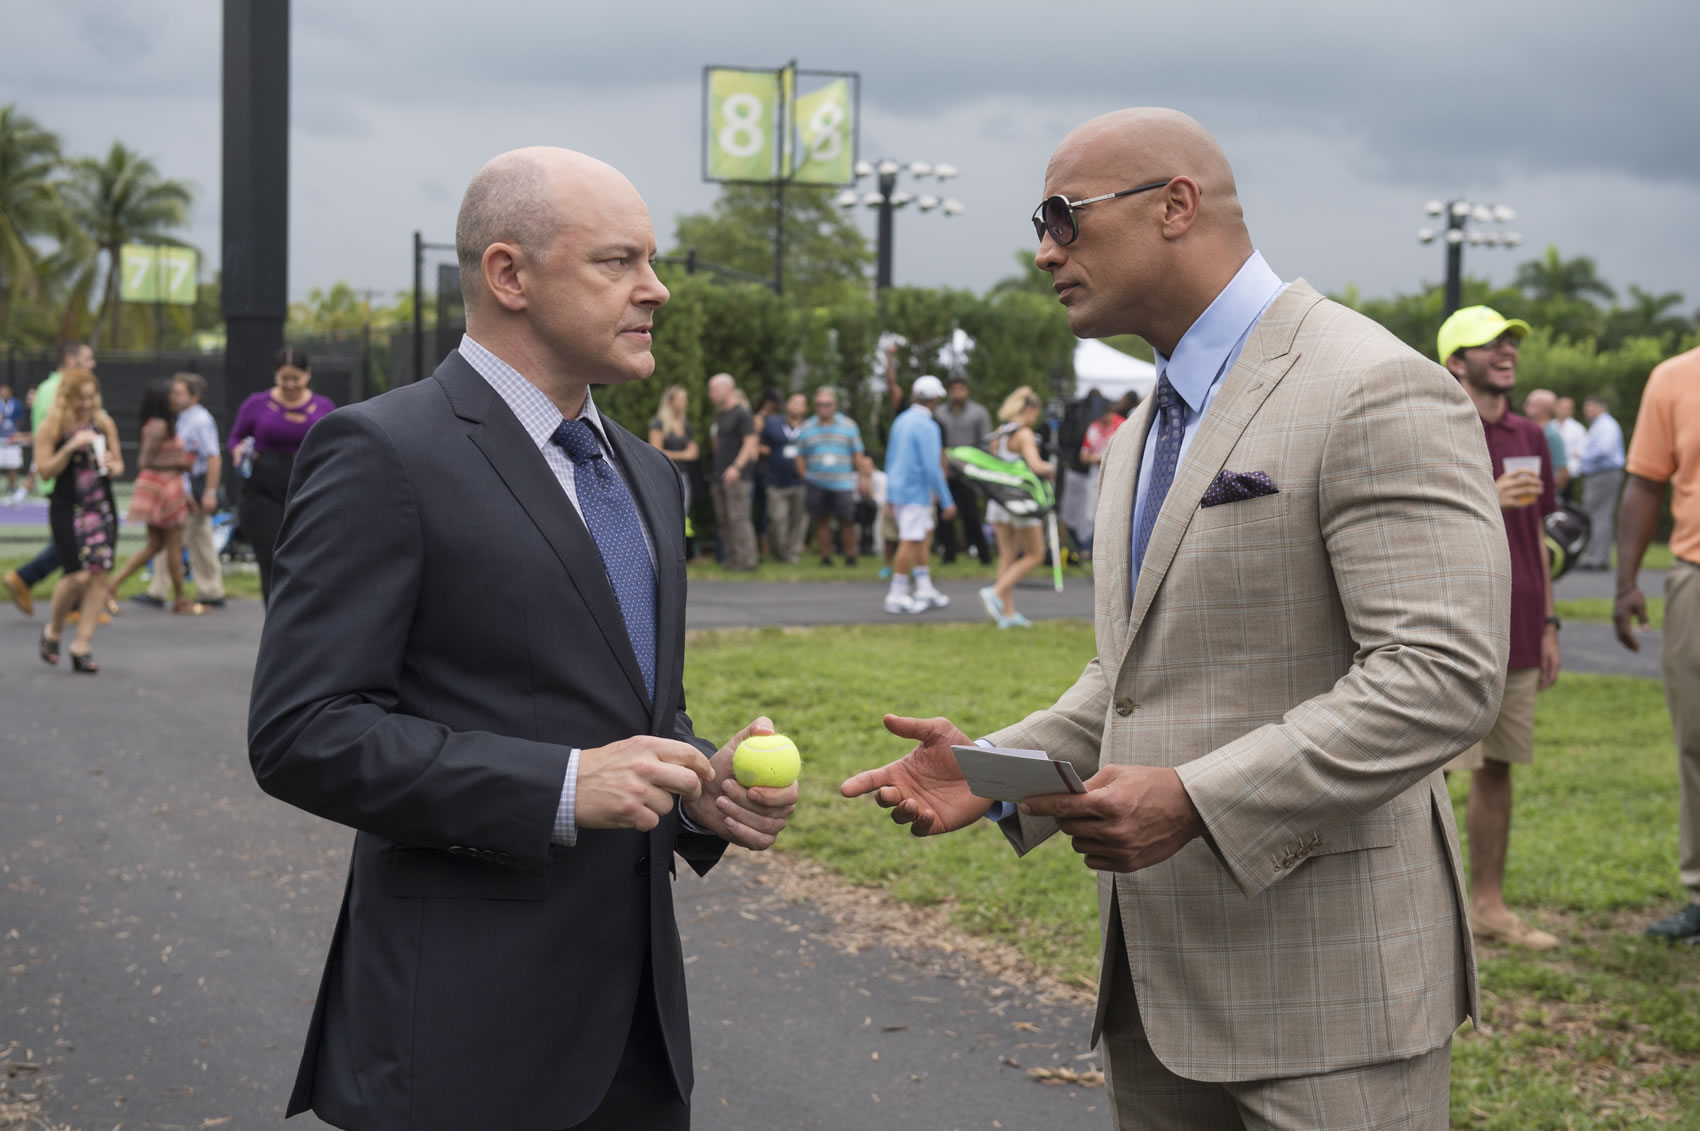 Ballers starring Dwayne Johnson seen here with co-star Rob Corddry (left) - image courtesy of Sky Deutschland GmbH -